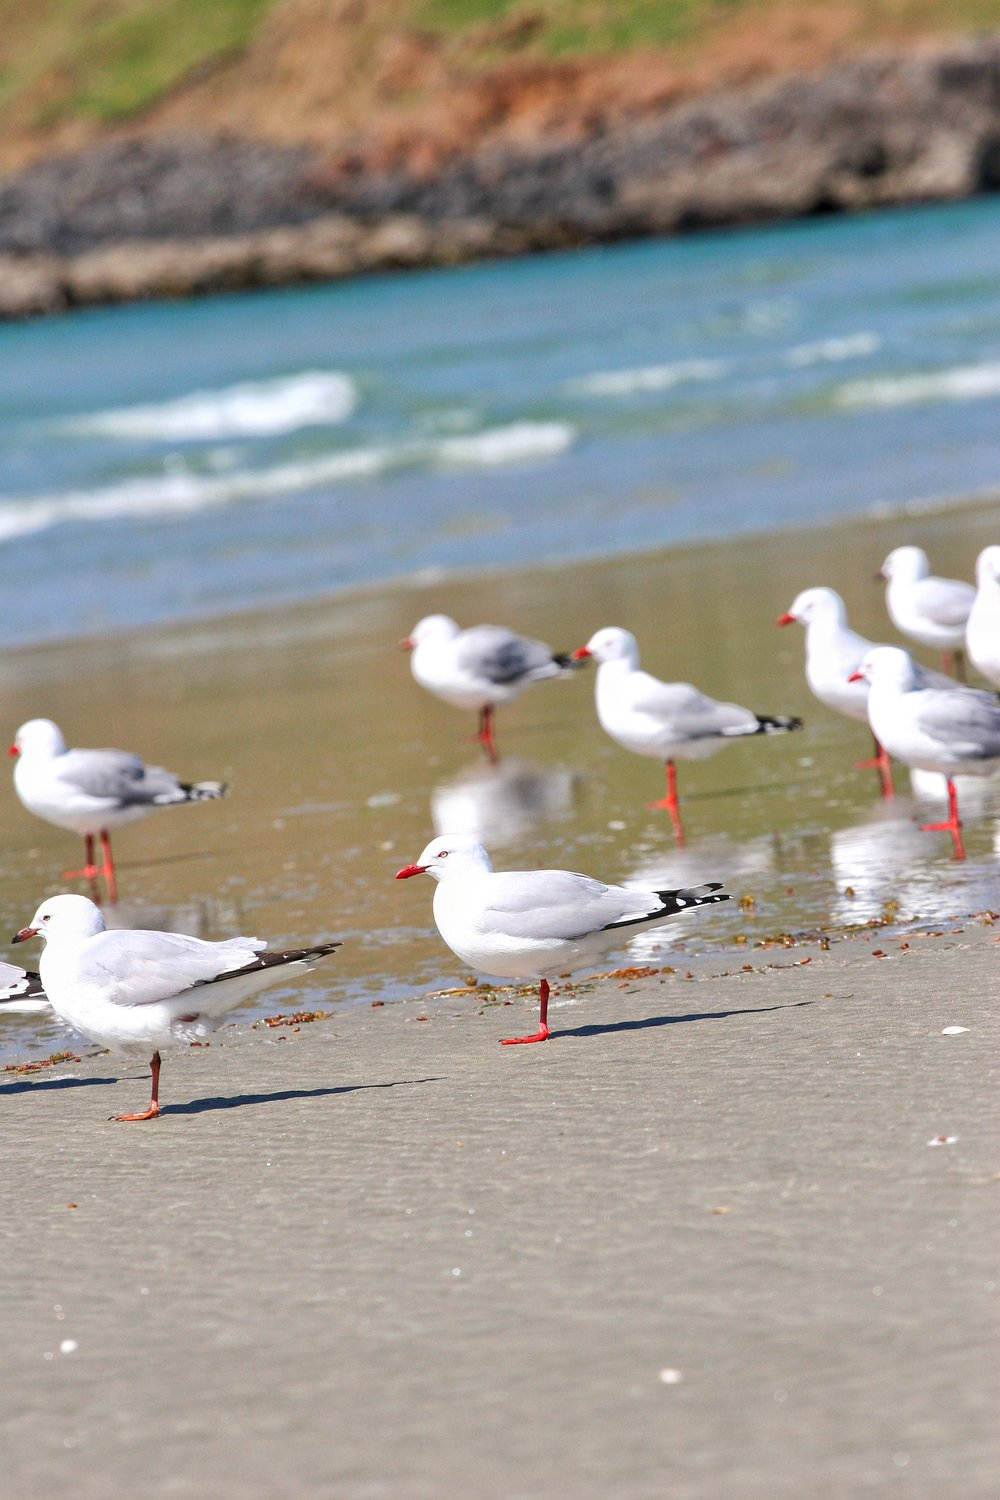 Victory Beach is a great spot for wildlife viewing on the Otago Peninsula